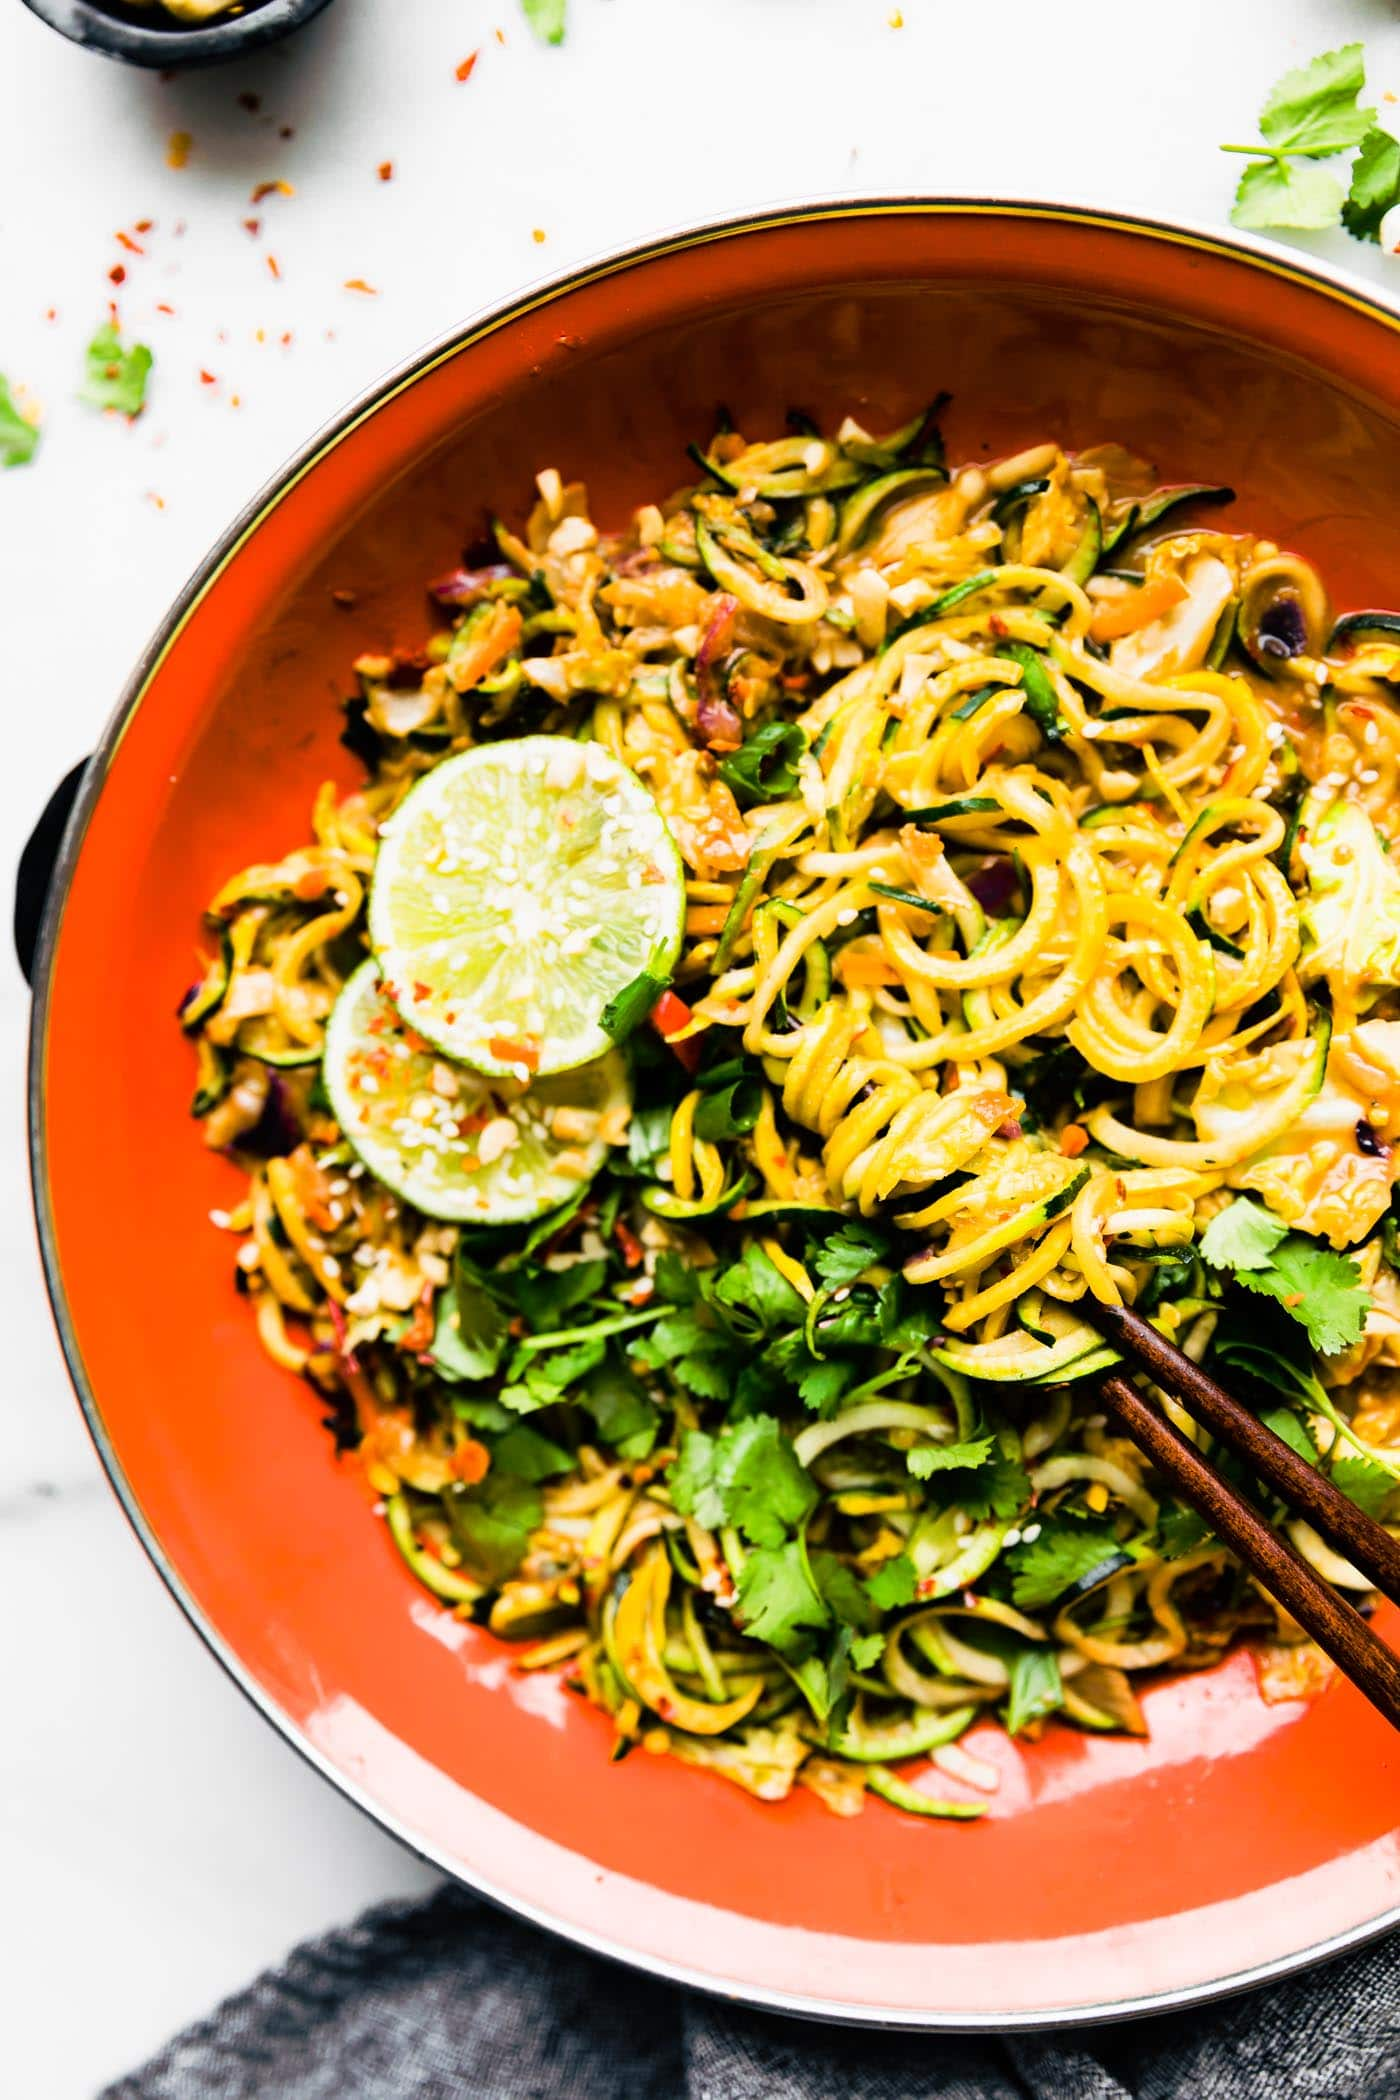 stir fry recipe made with spiralized vegetables